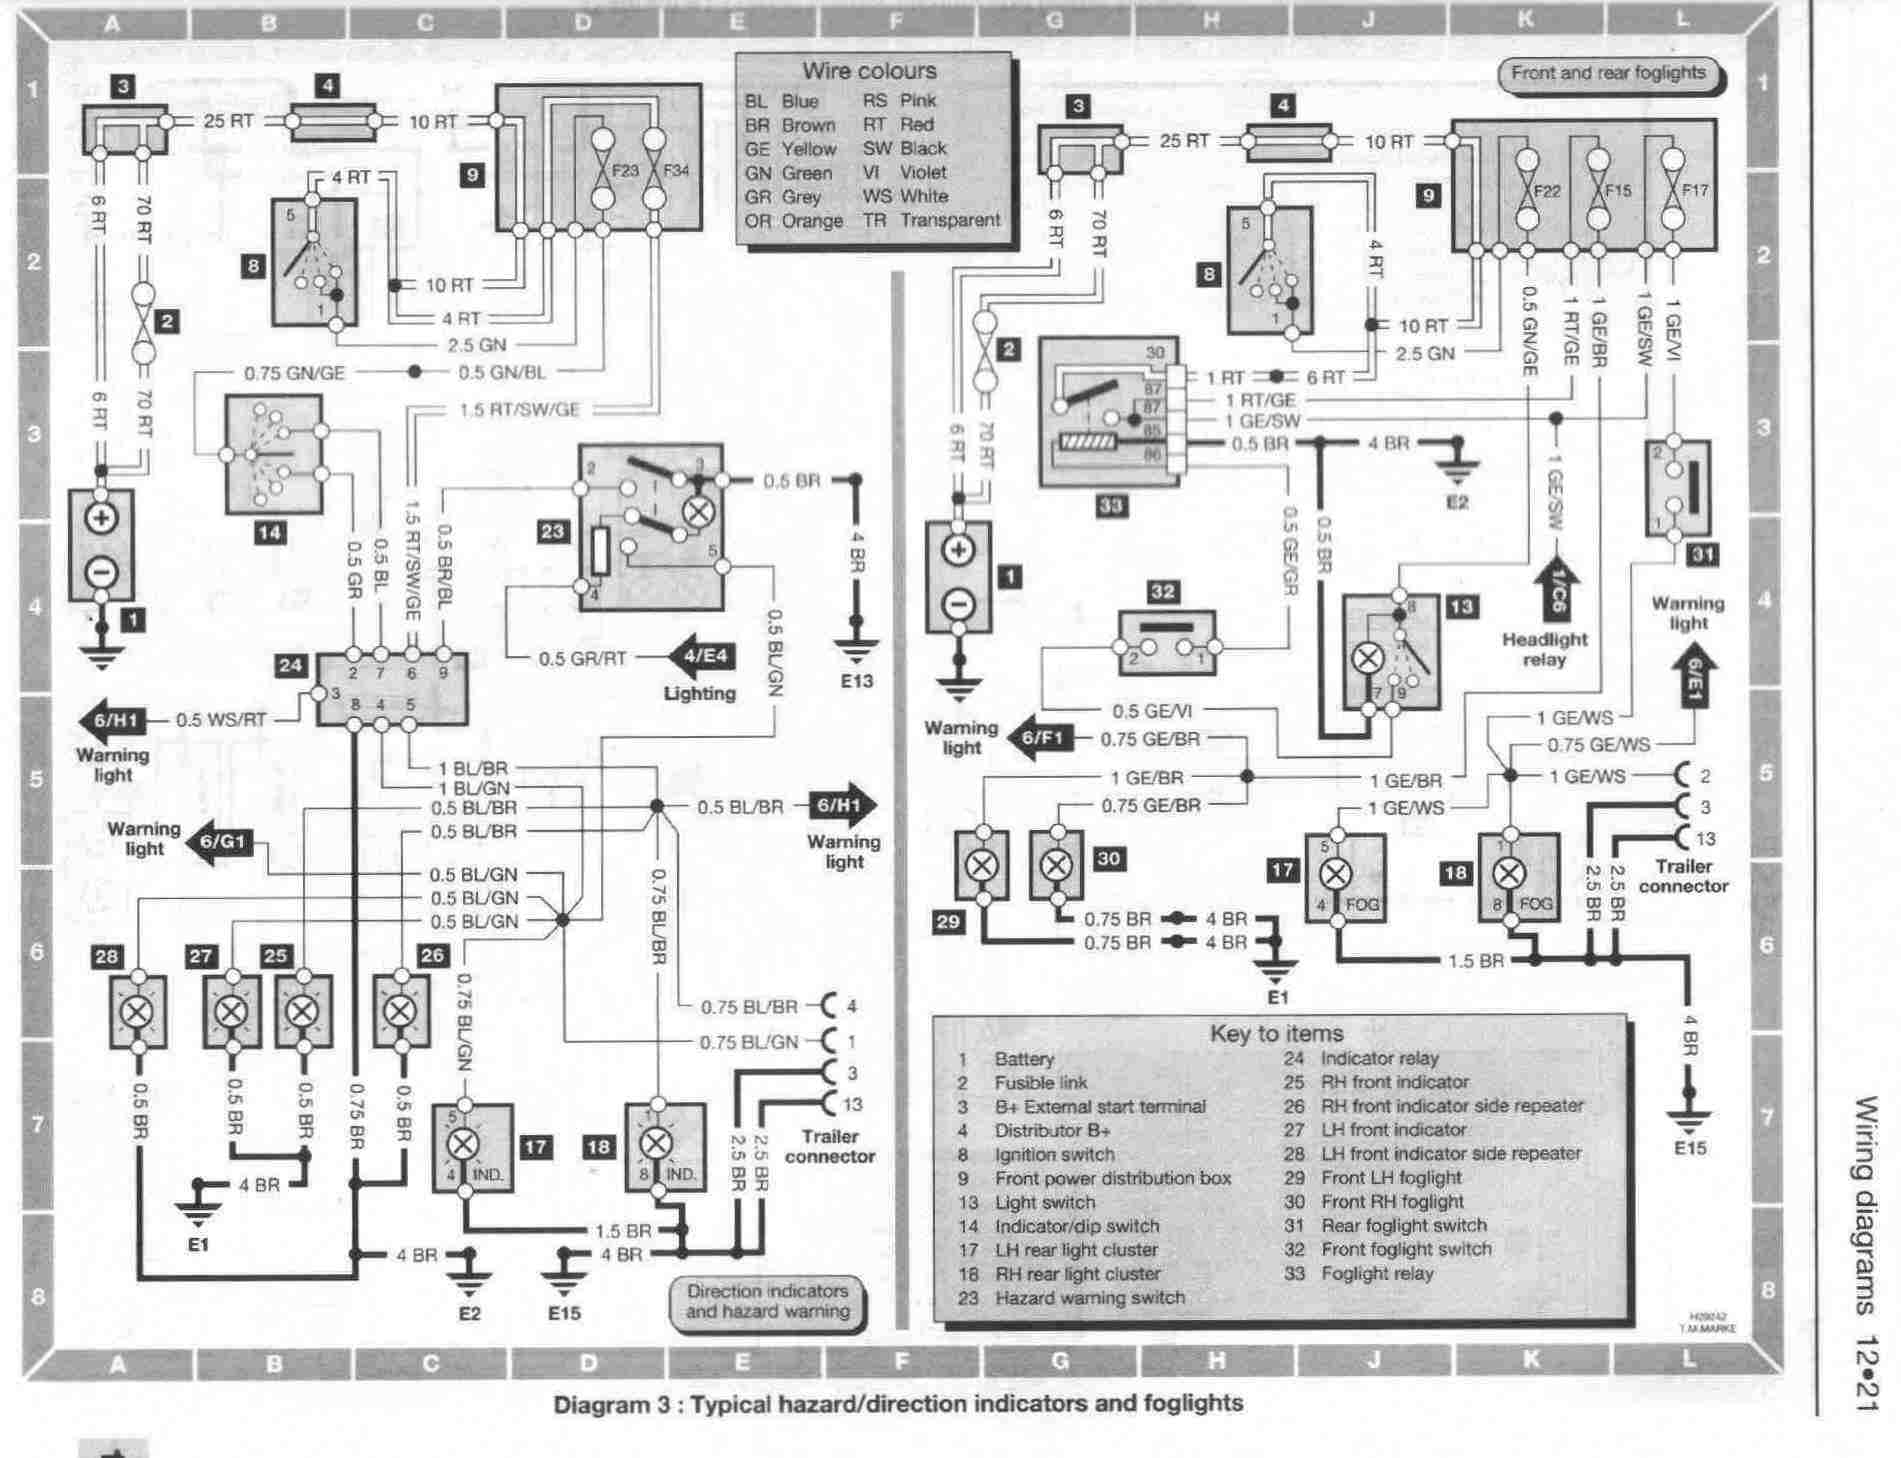 2000 international 4700 wiring diagram 2000 discover your wiring electric window wiring diagram 1999 ihc eagle 2000 international 4700